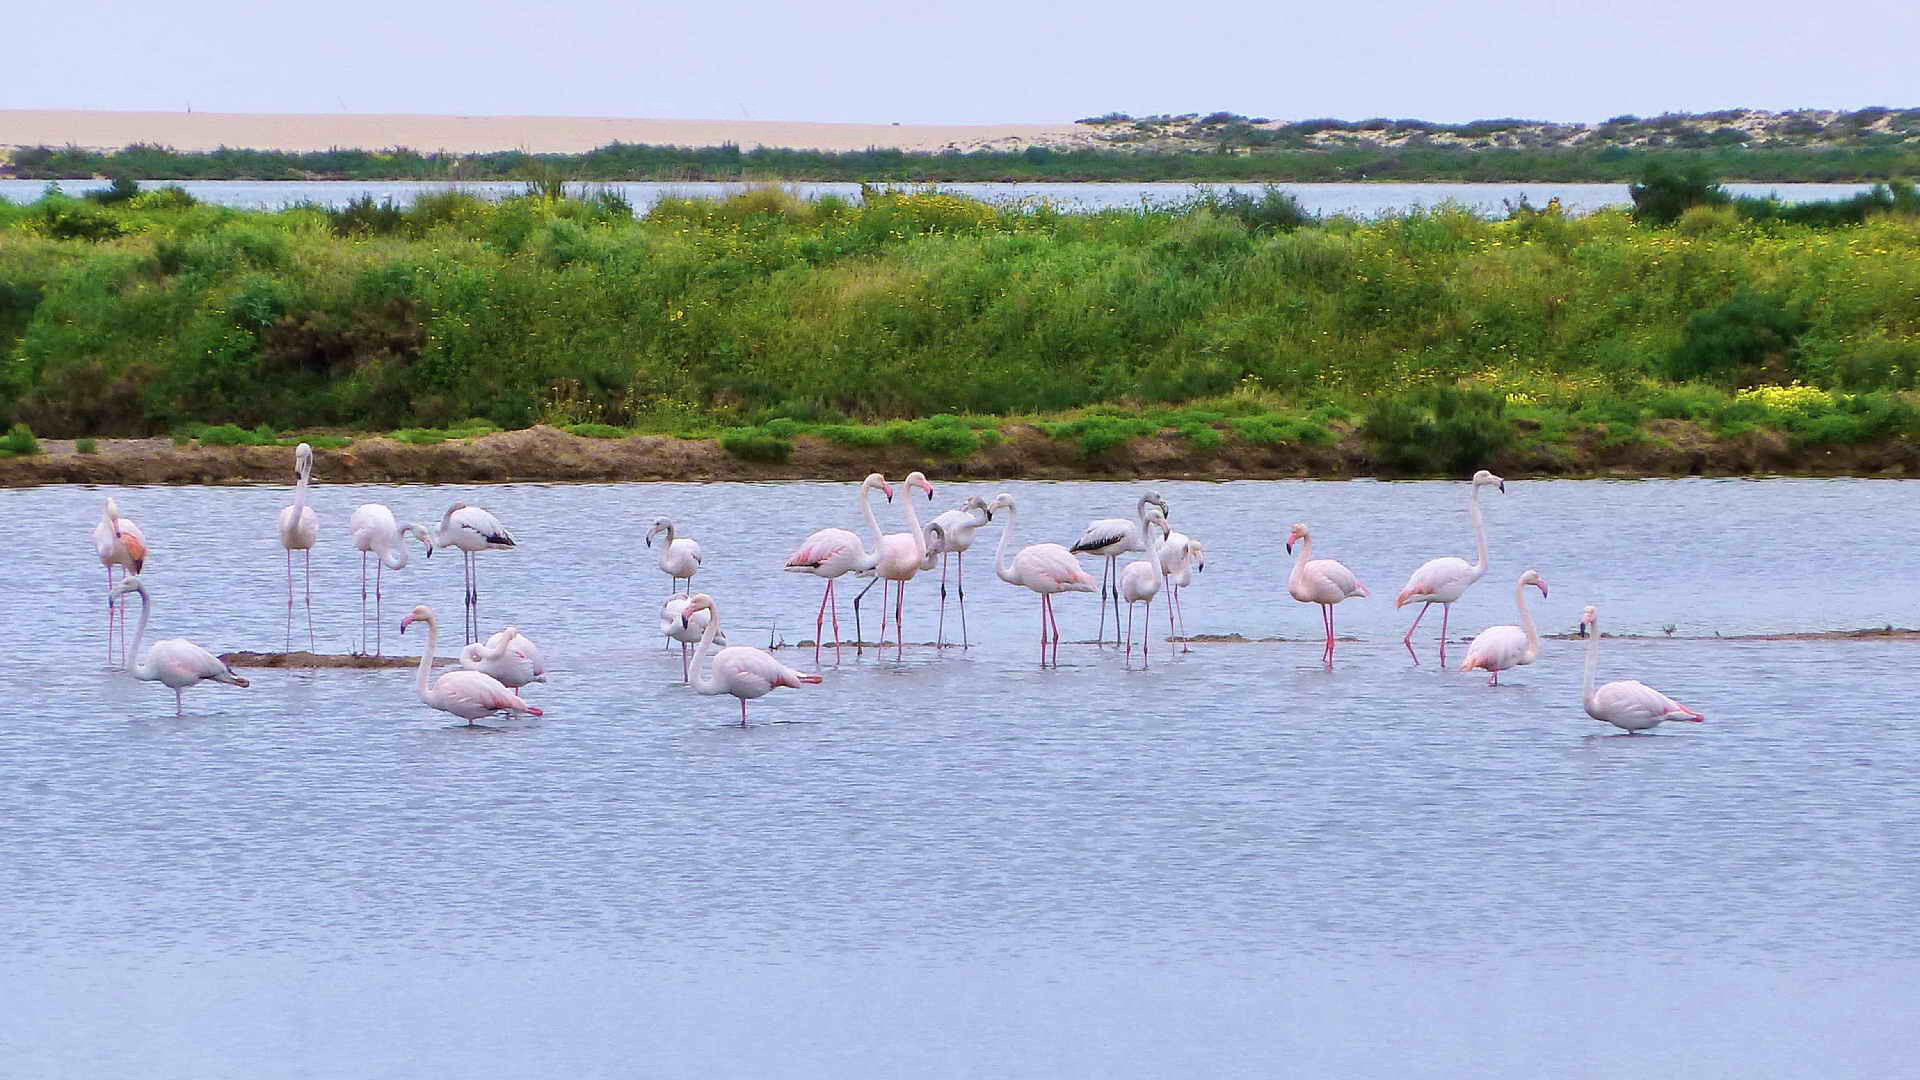 Portugal Bike Tours in Financial Times Ria Formosa Natural Park, Biking in Portugal